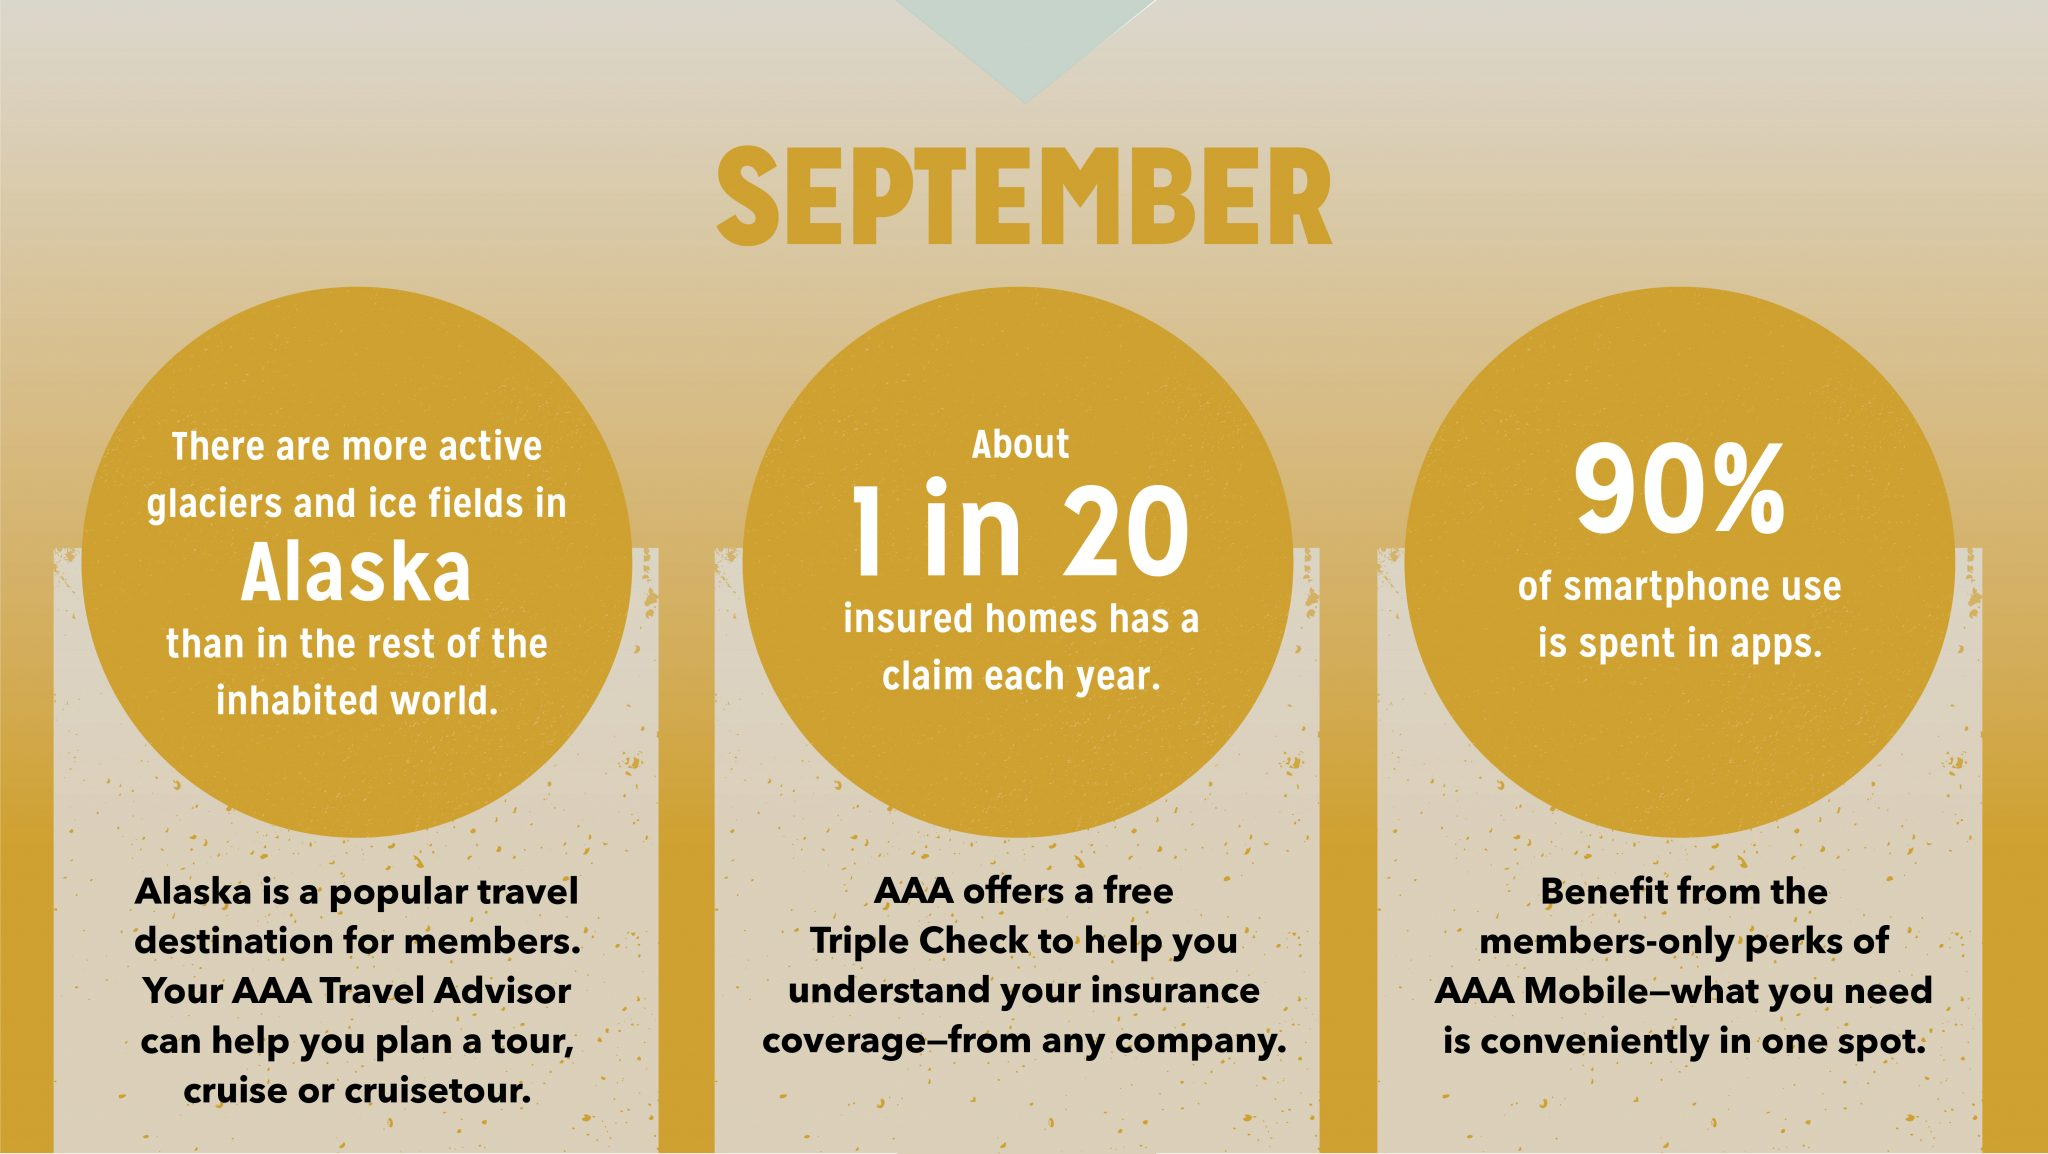 aaa-membership-benefits-september